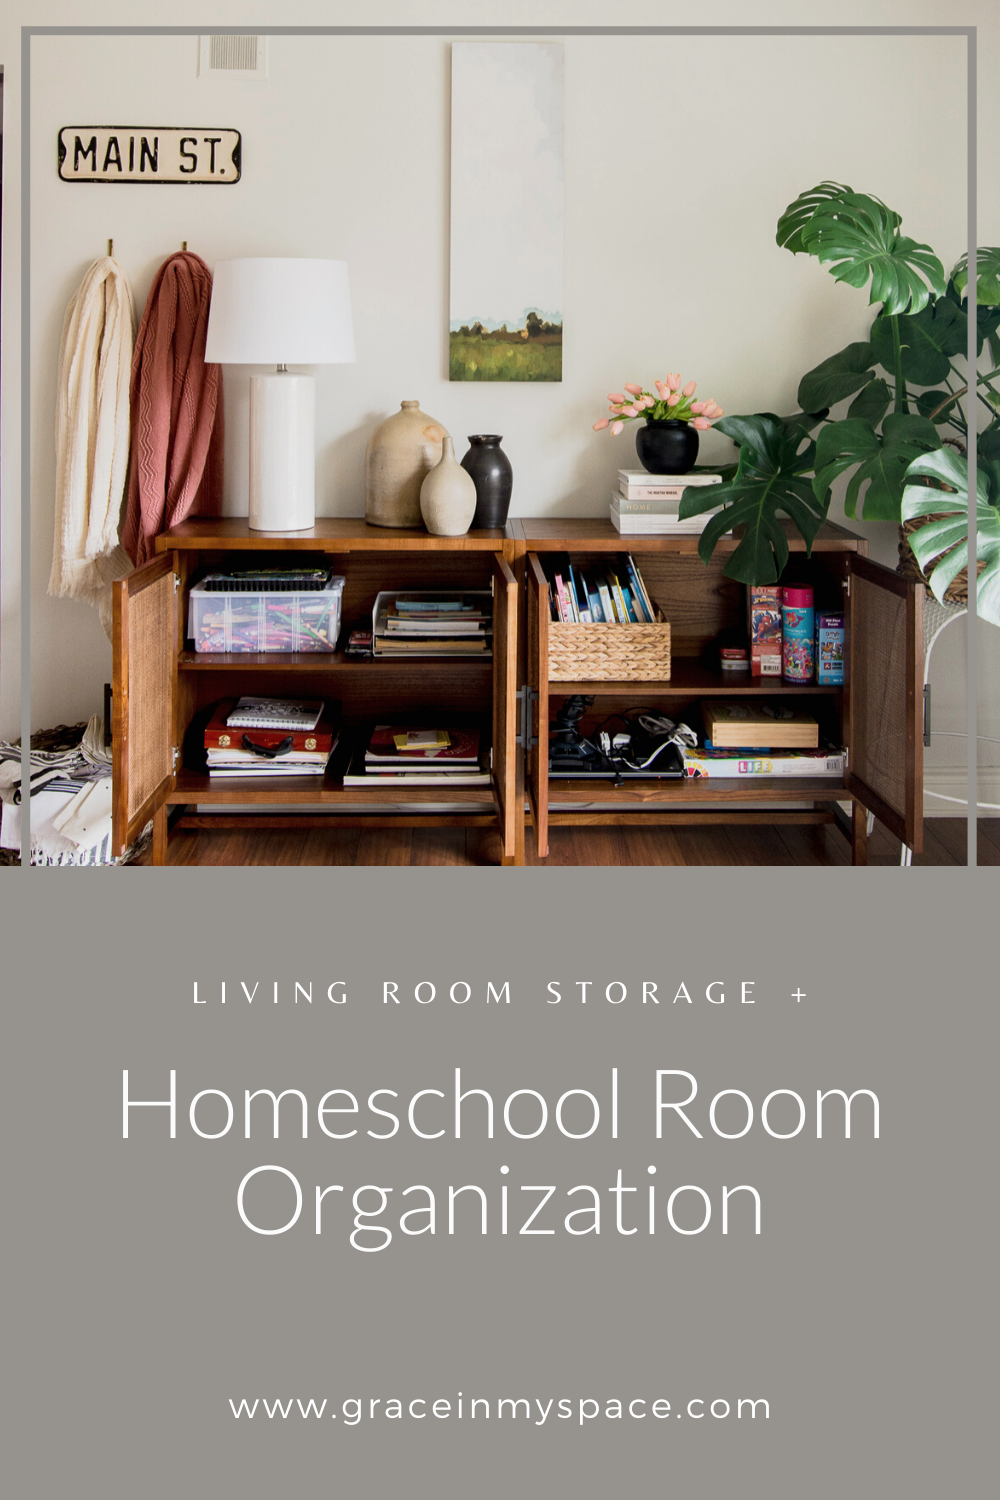 Homeschool Organization and Living Room Storage